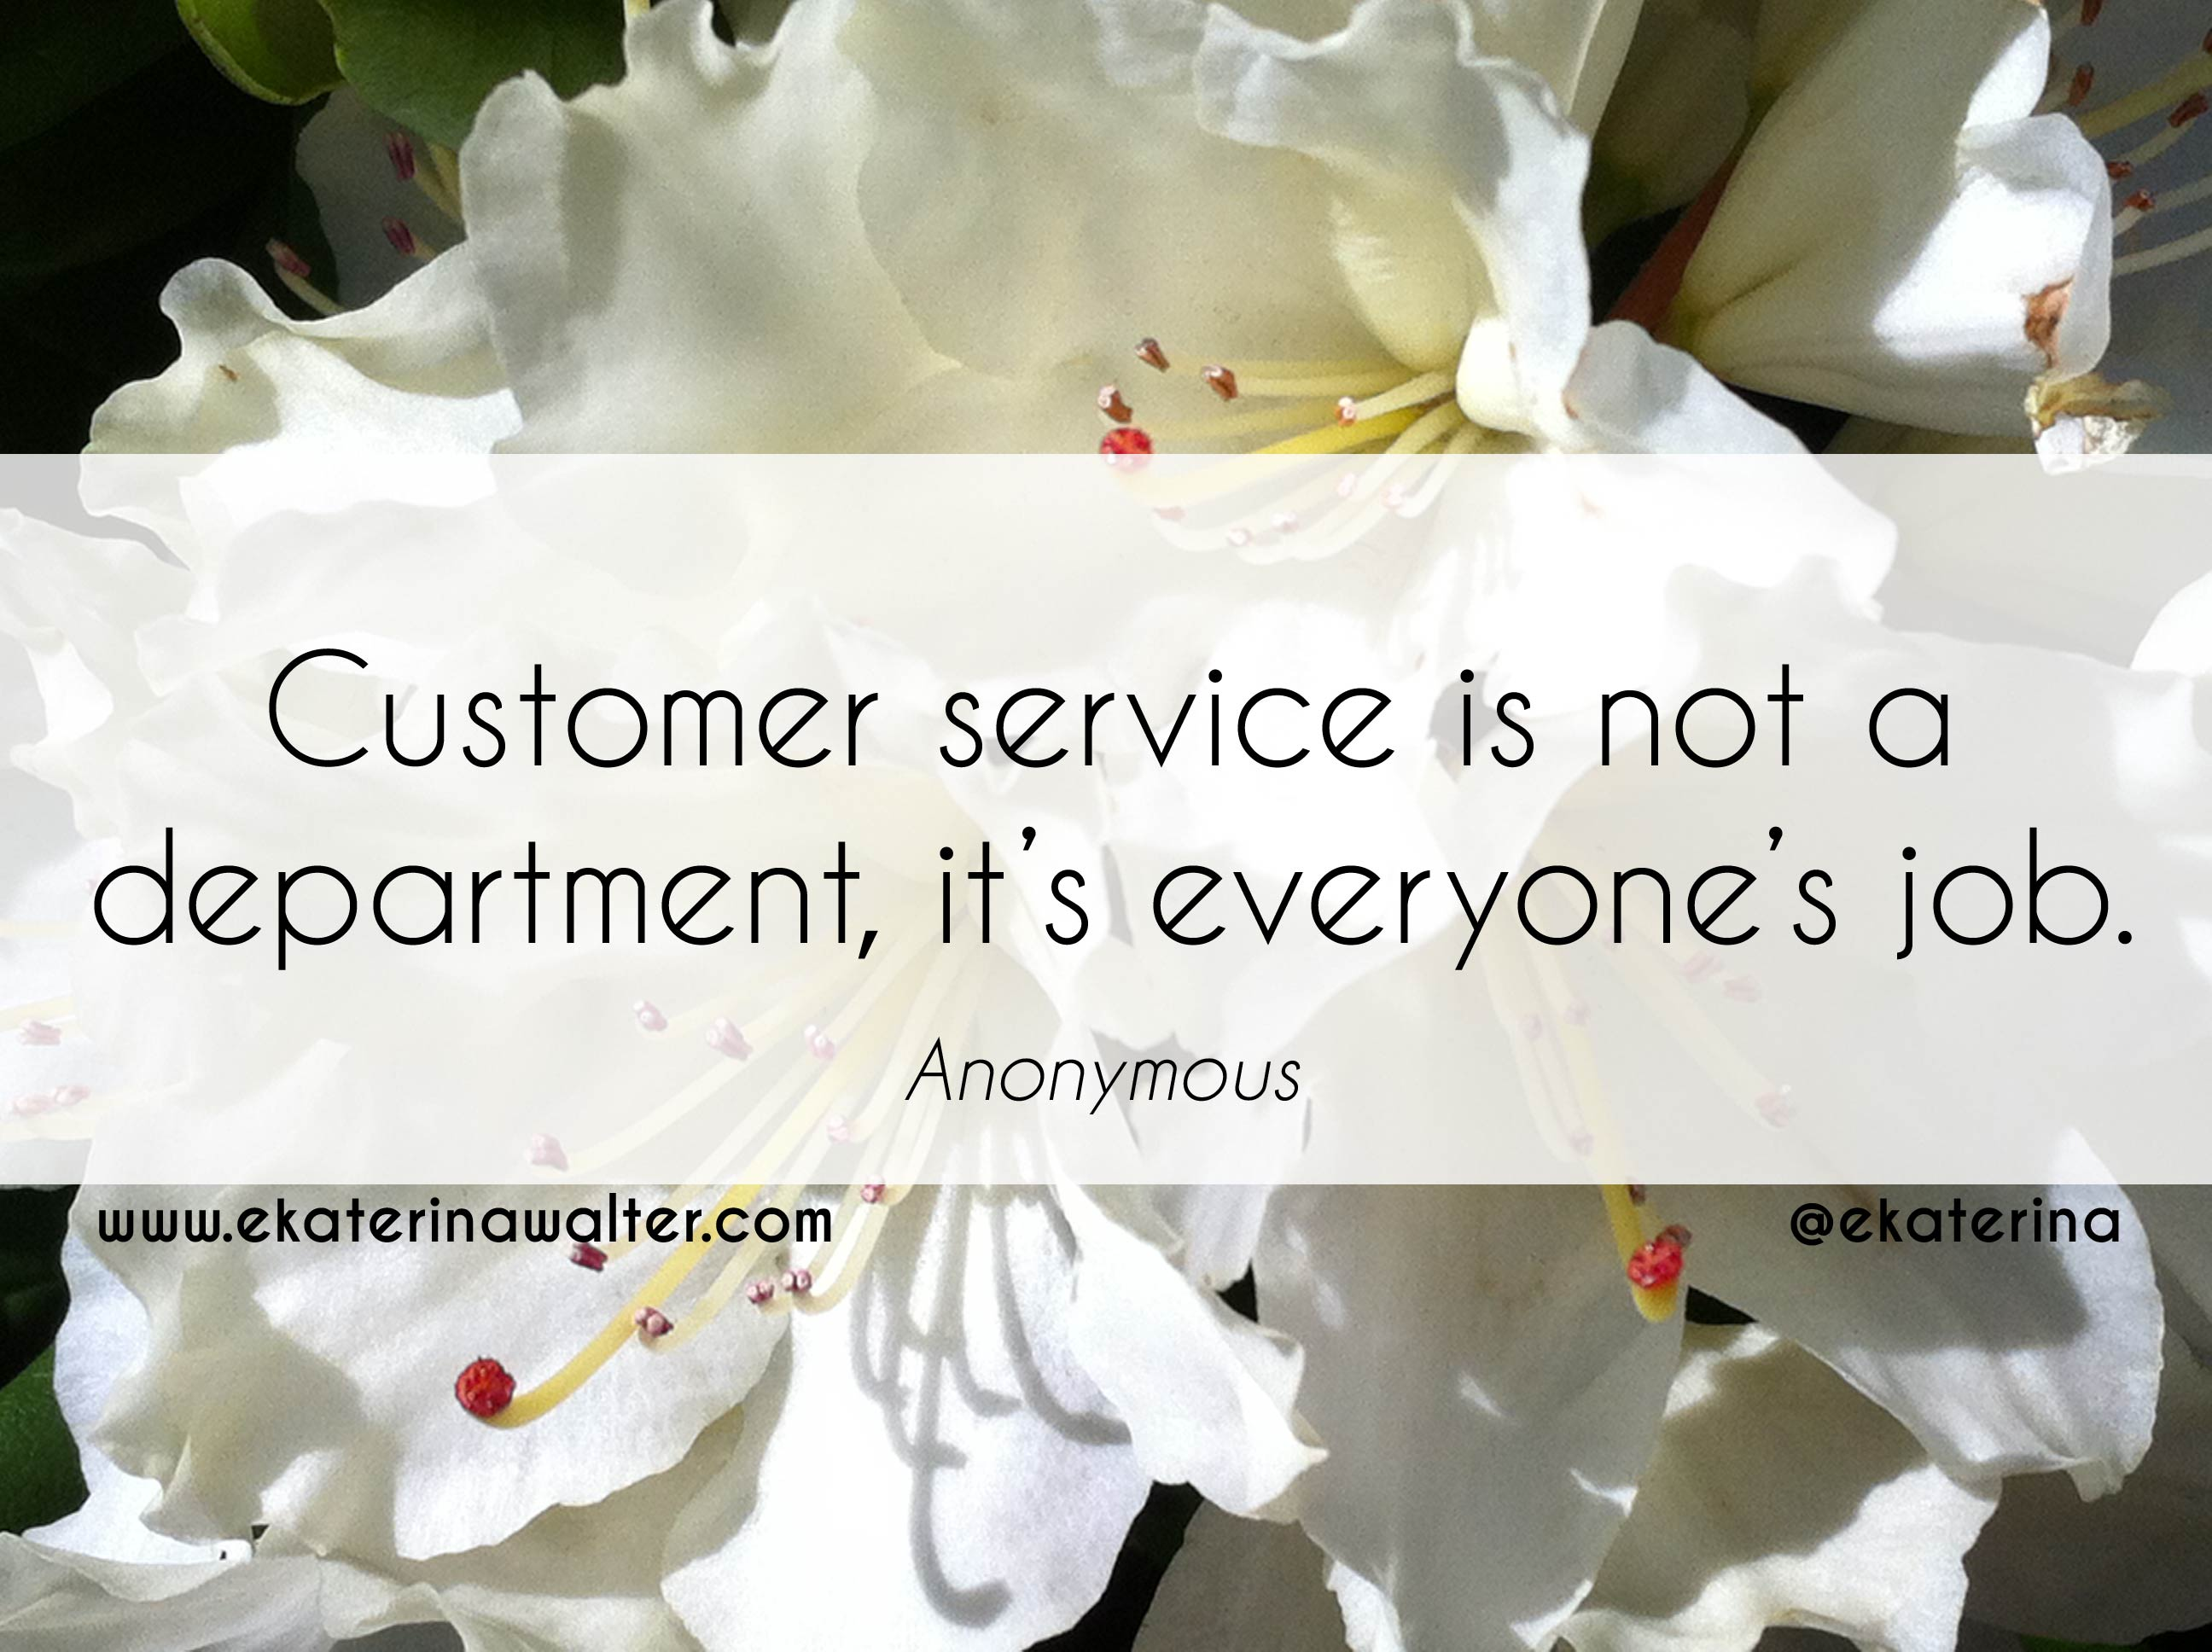 customer service 2 essay Facilitate partners' feedback and service improvements proposals - starbucks needs a structured framework to align the whole customer experience to overall business strategies, considering other elements like people, process and technology especially if we take into consideration the ambitious growth plan.